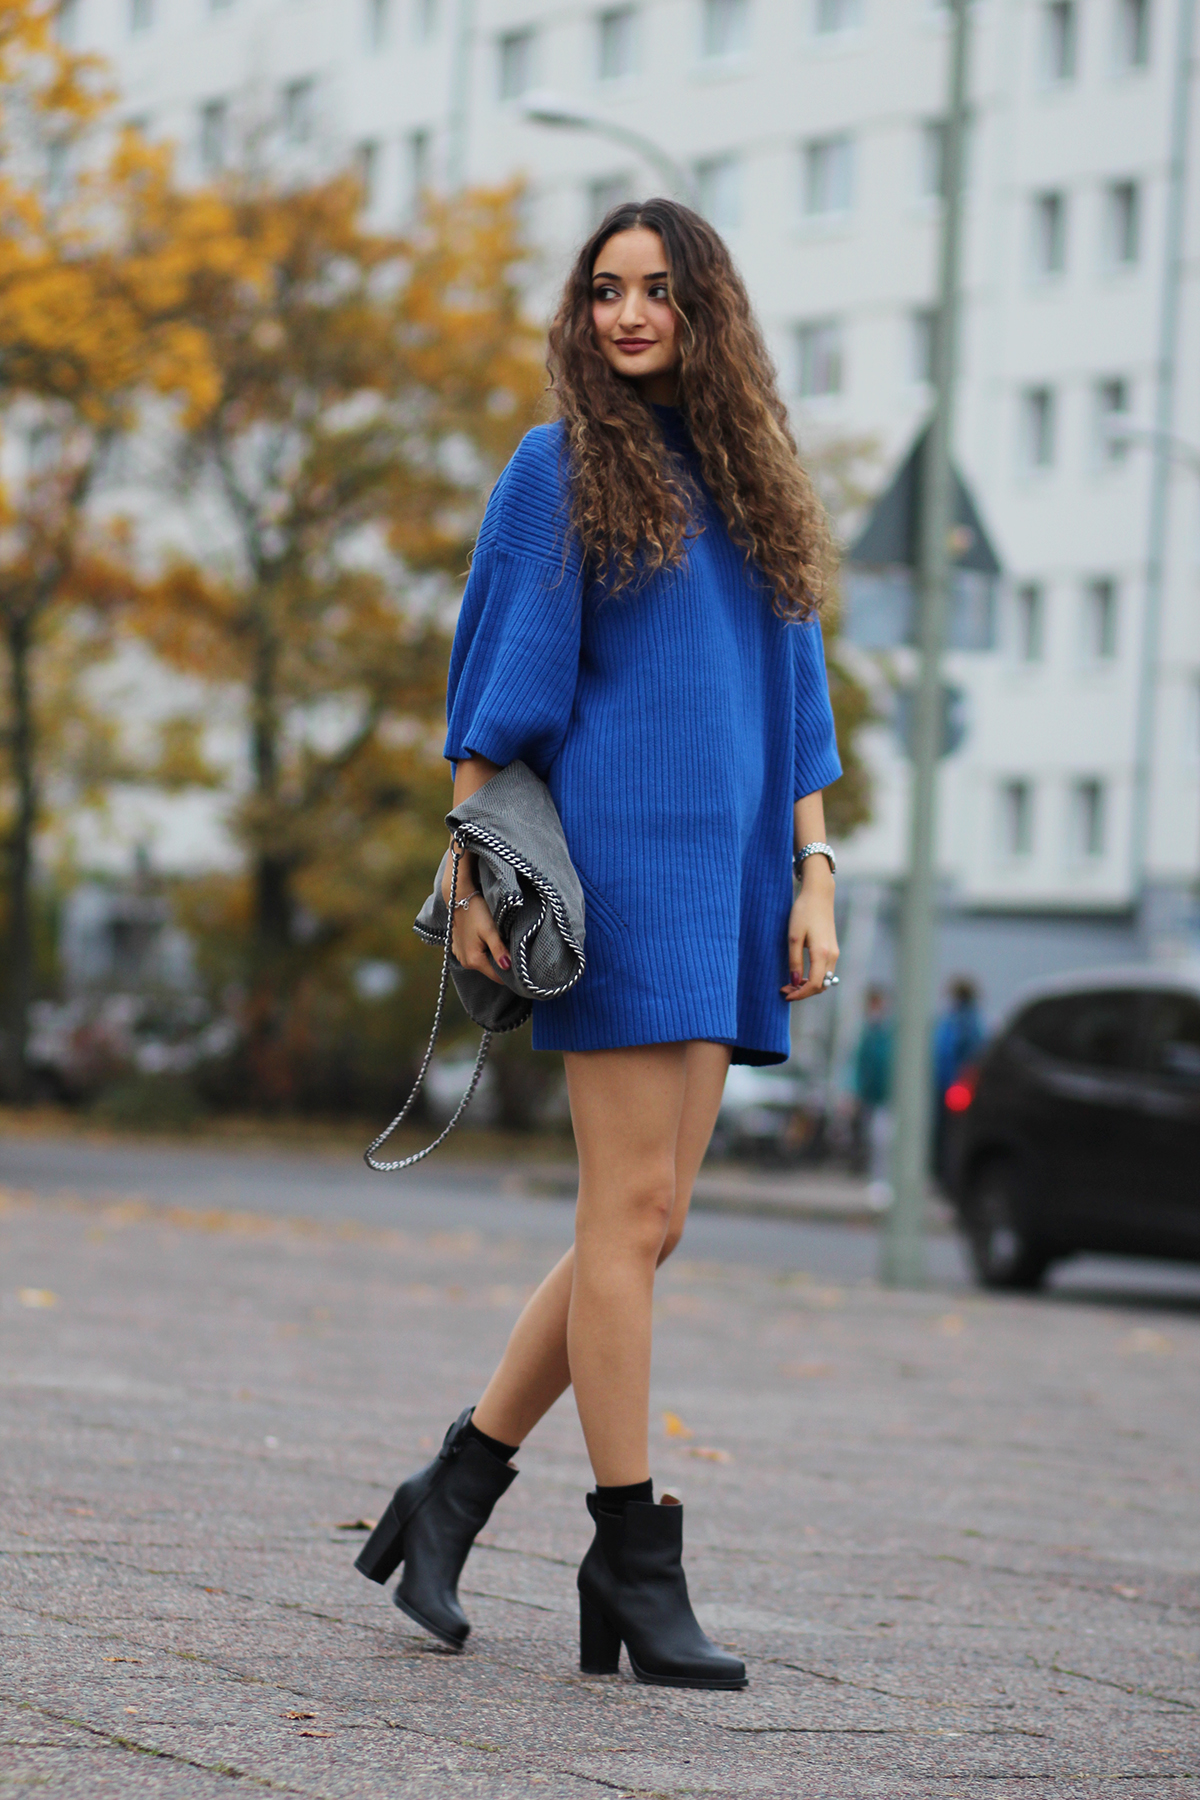 Blaues_strickkleid